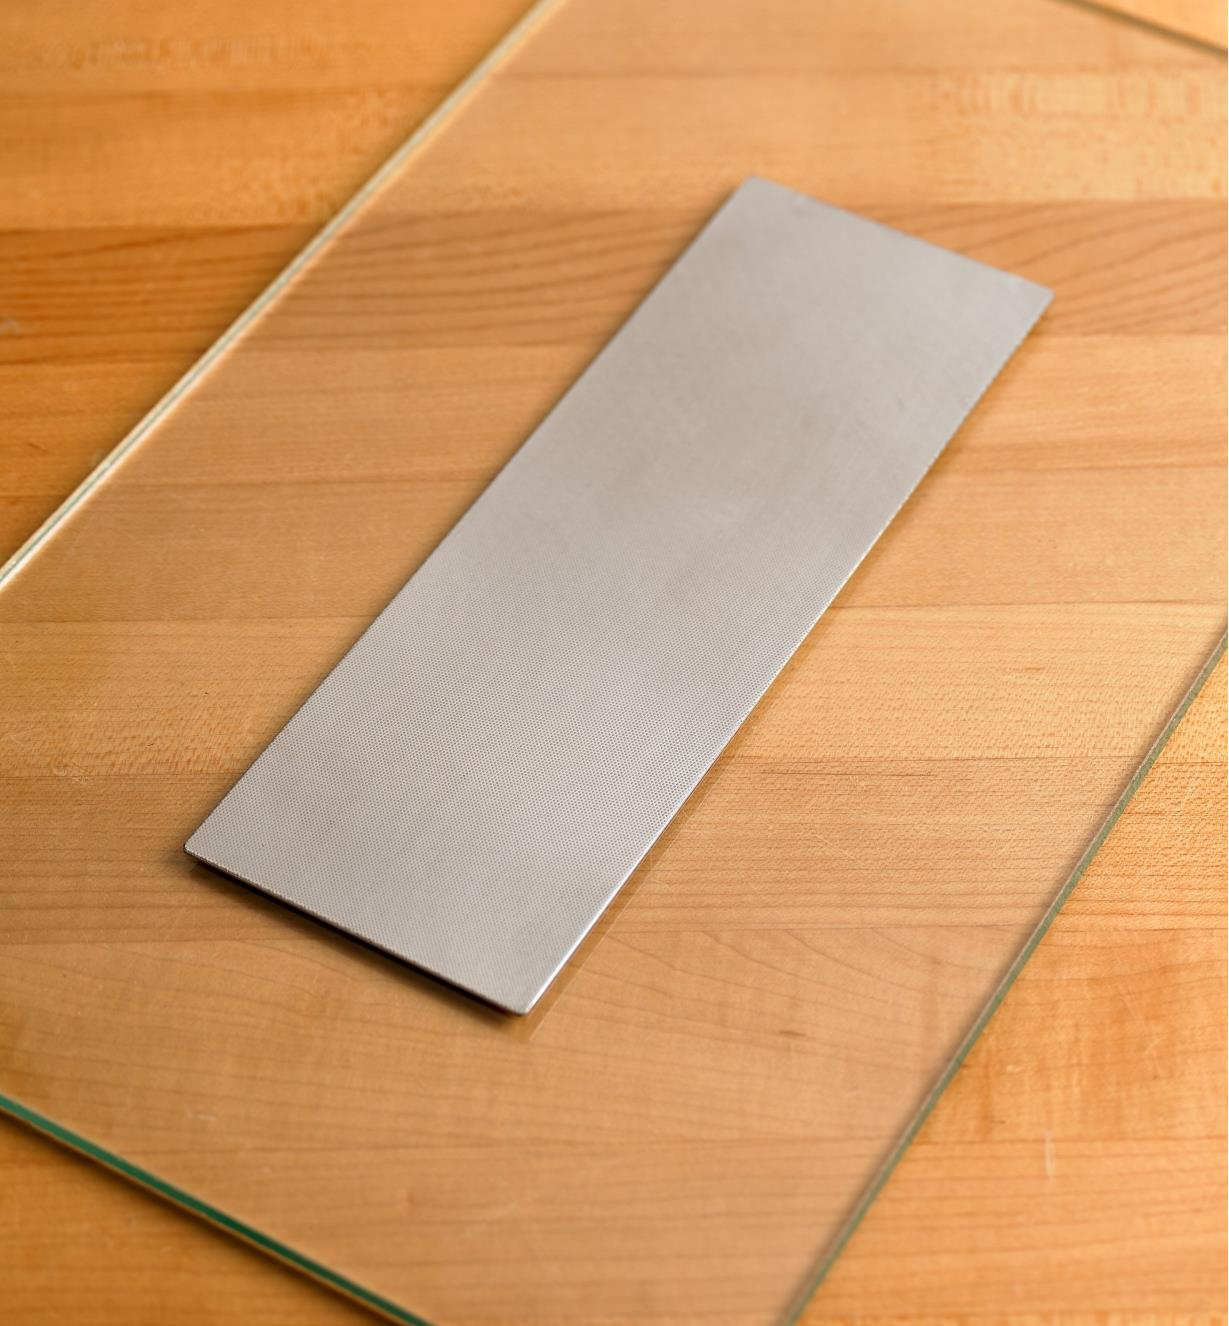 Diamond abrasive sheet affixed to a glass lapping plate